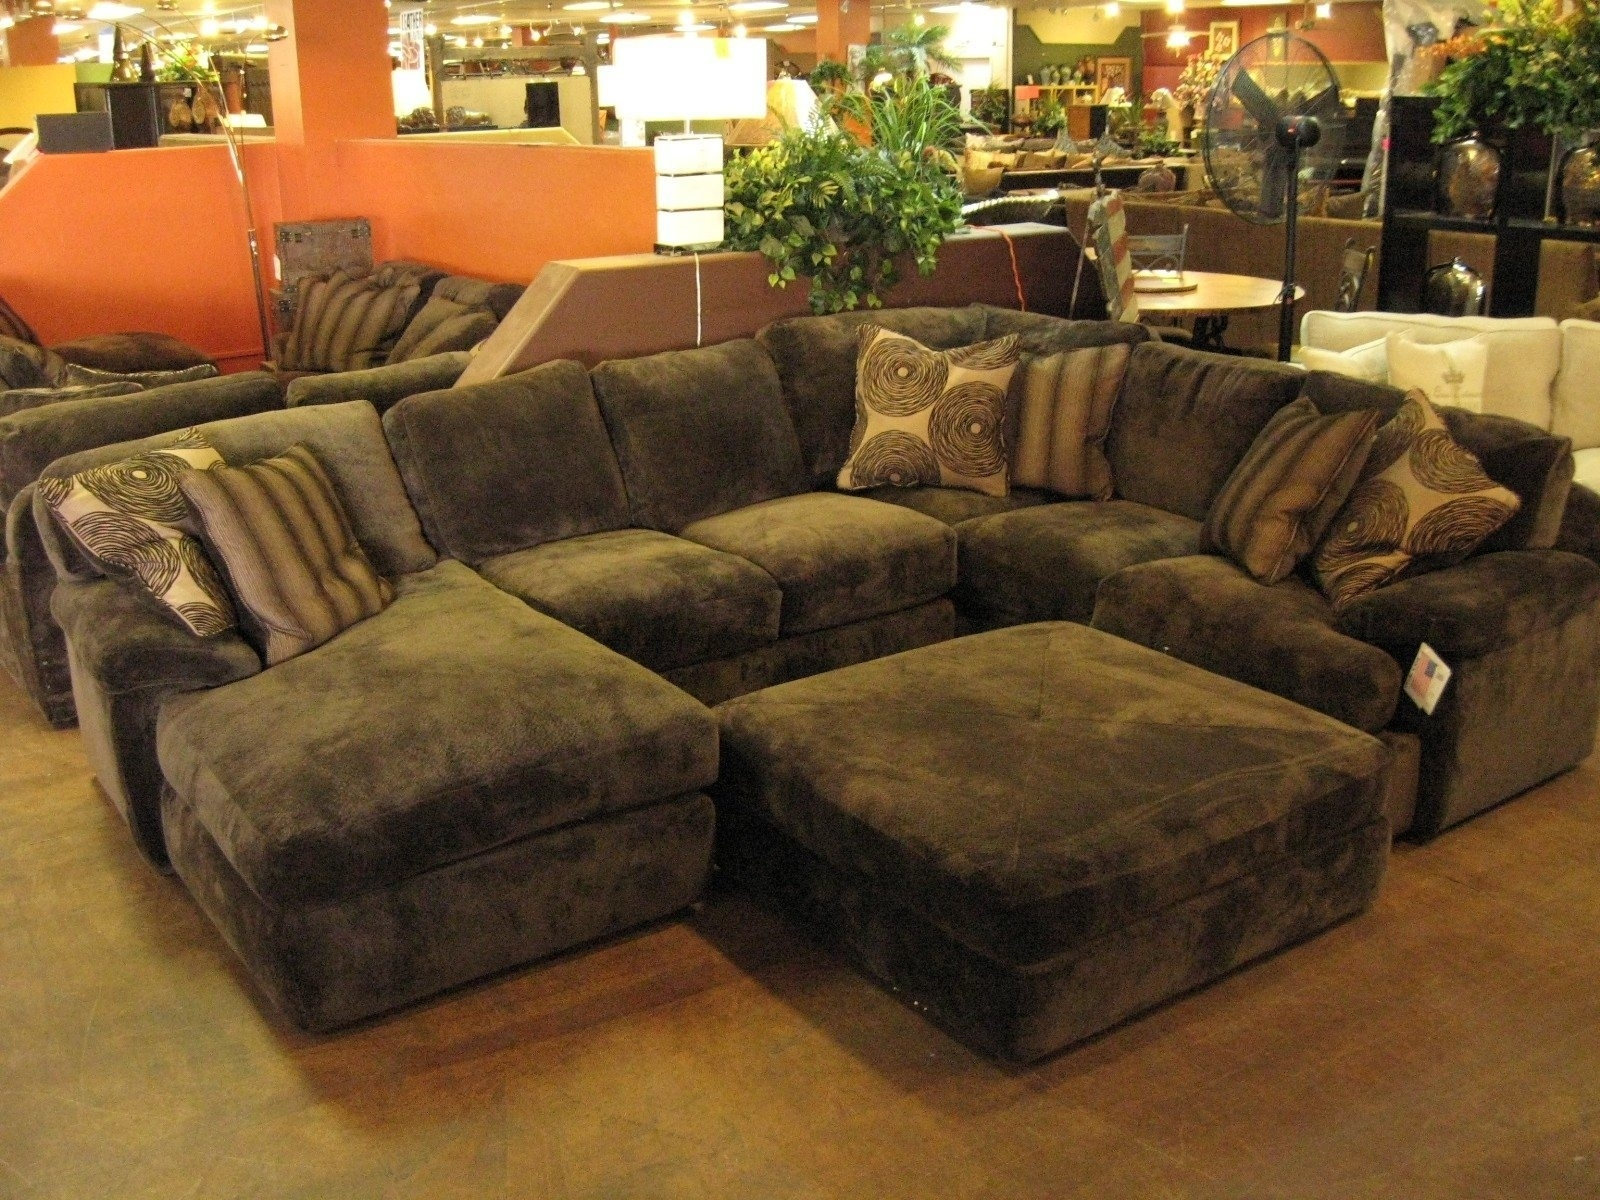 Sofa : Marvelous Large Sectional Sofa With Chaise Living Room With Small Sectional Sofas With Chaise And Ottoman (View 6 of 10)